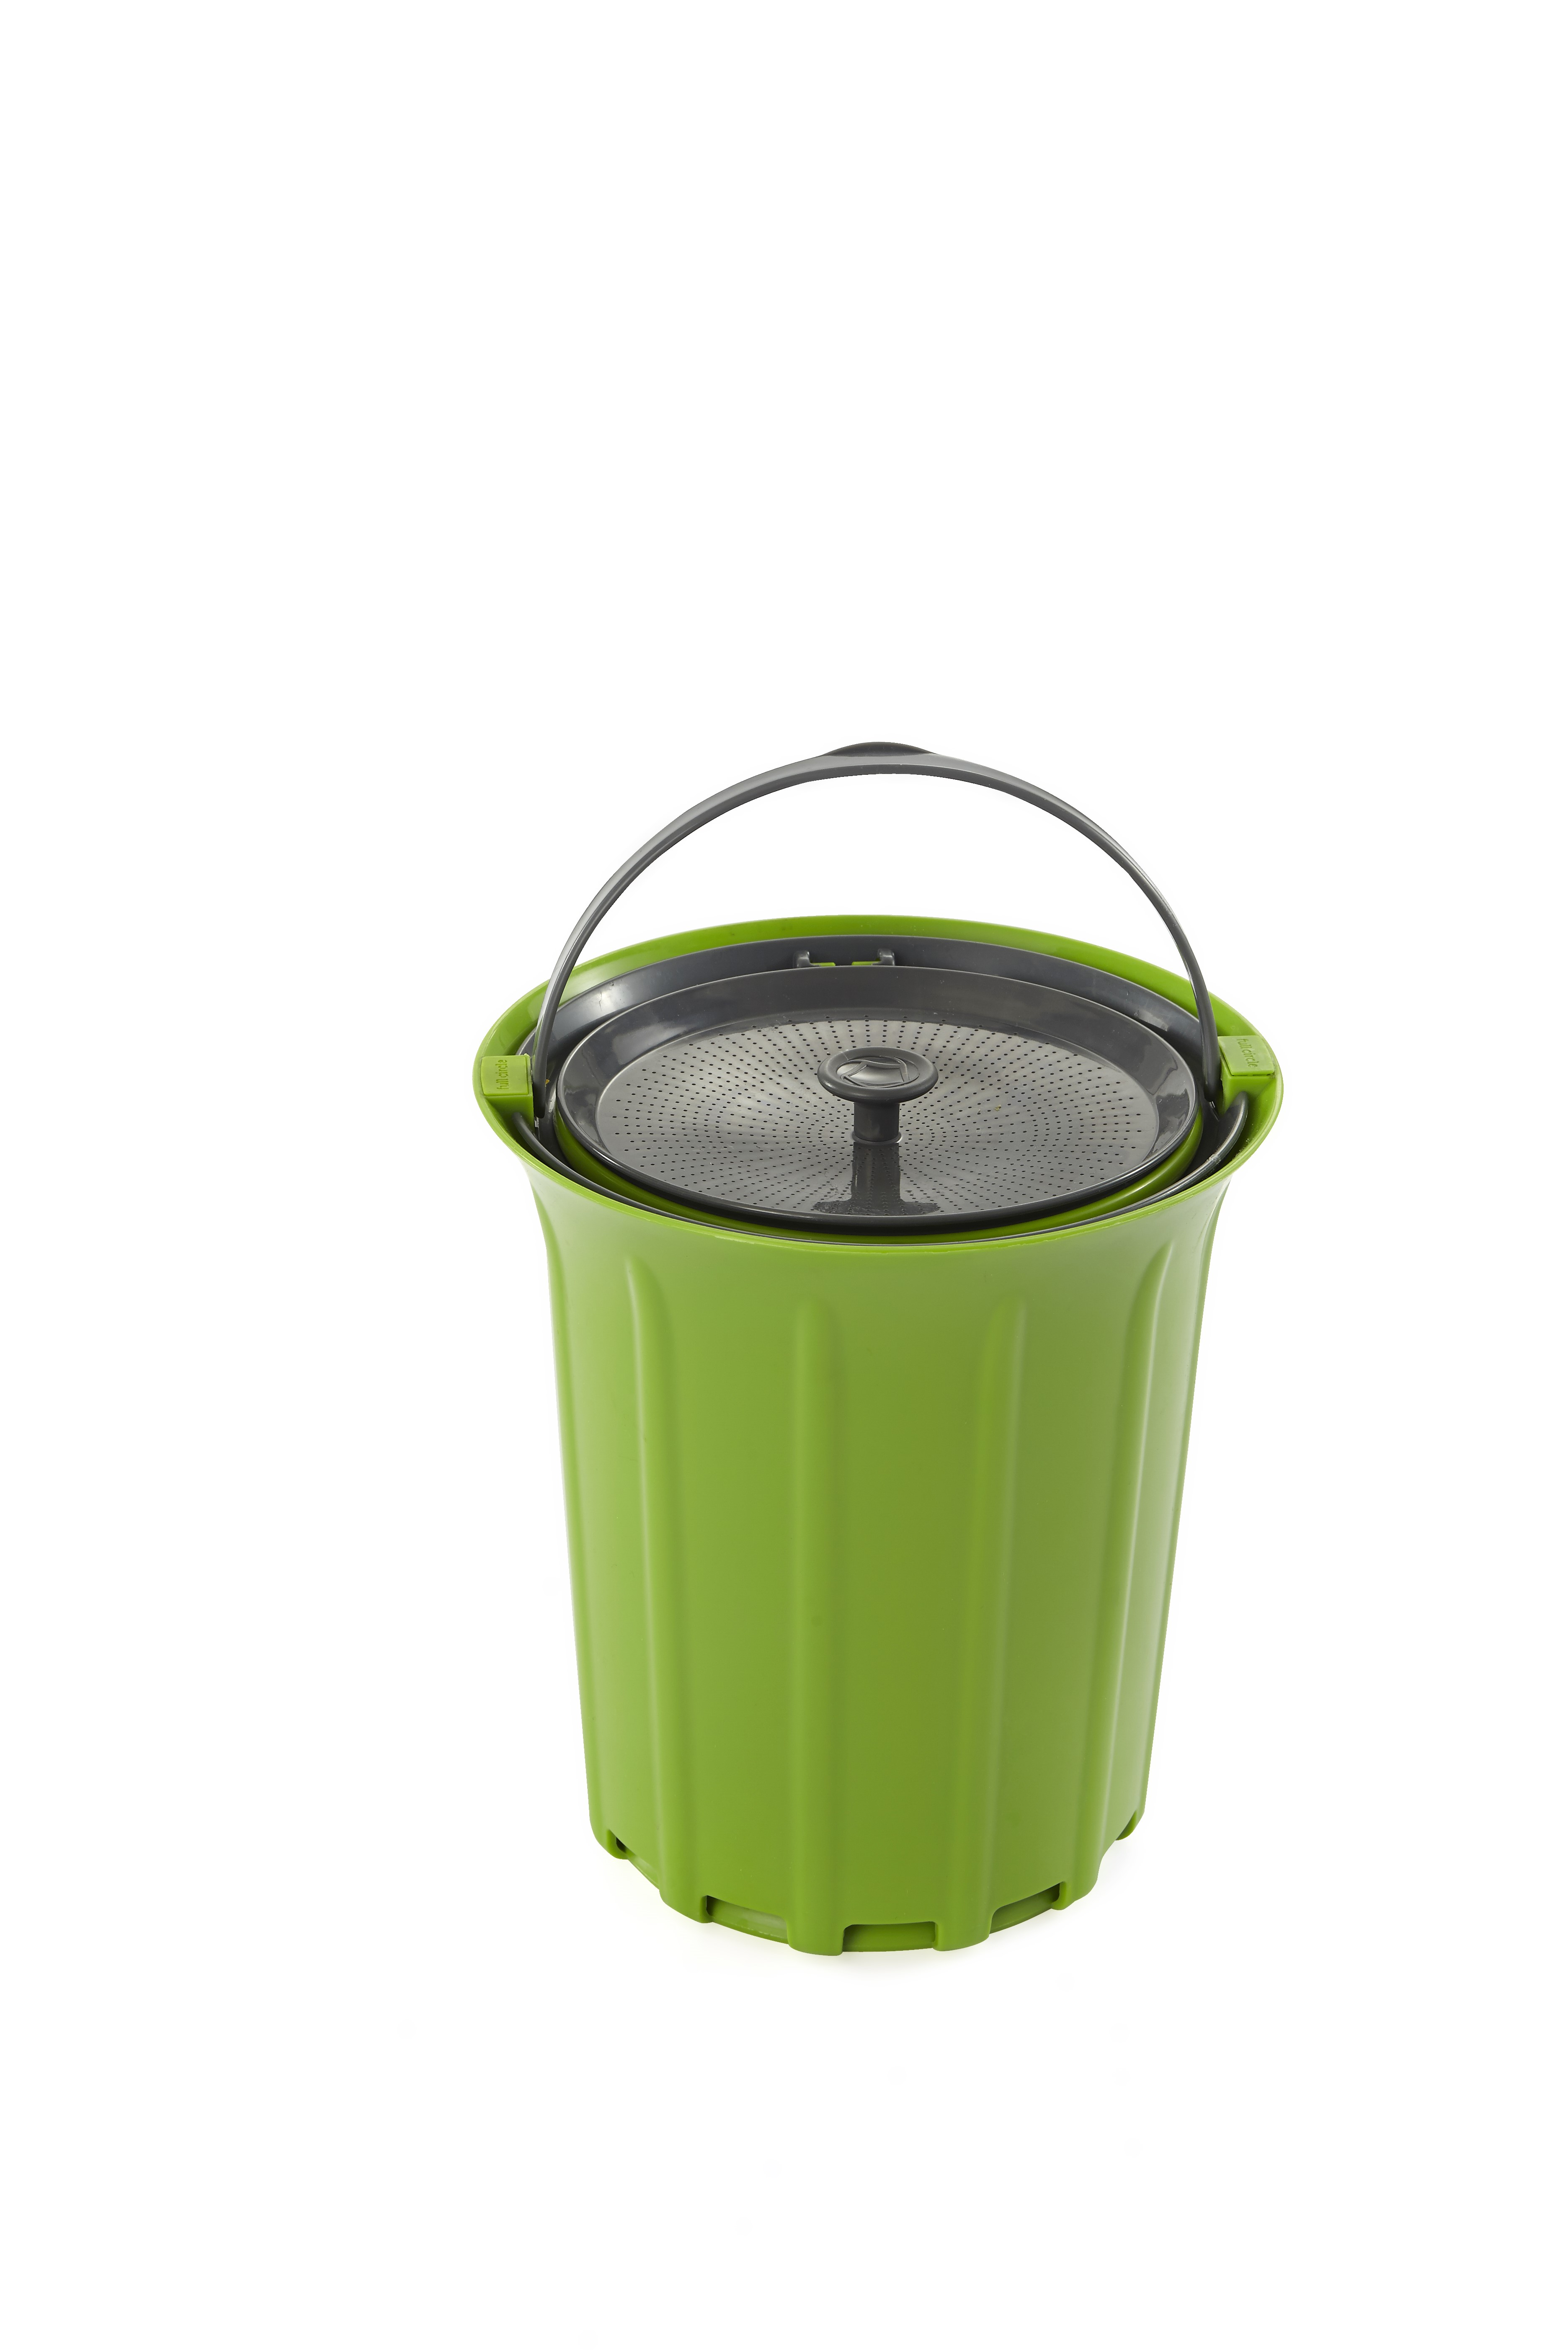 Full Circle Breeze Odor-Free Countertop Compost Collector, Green Slate by Full Circle Home, LLC